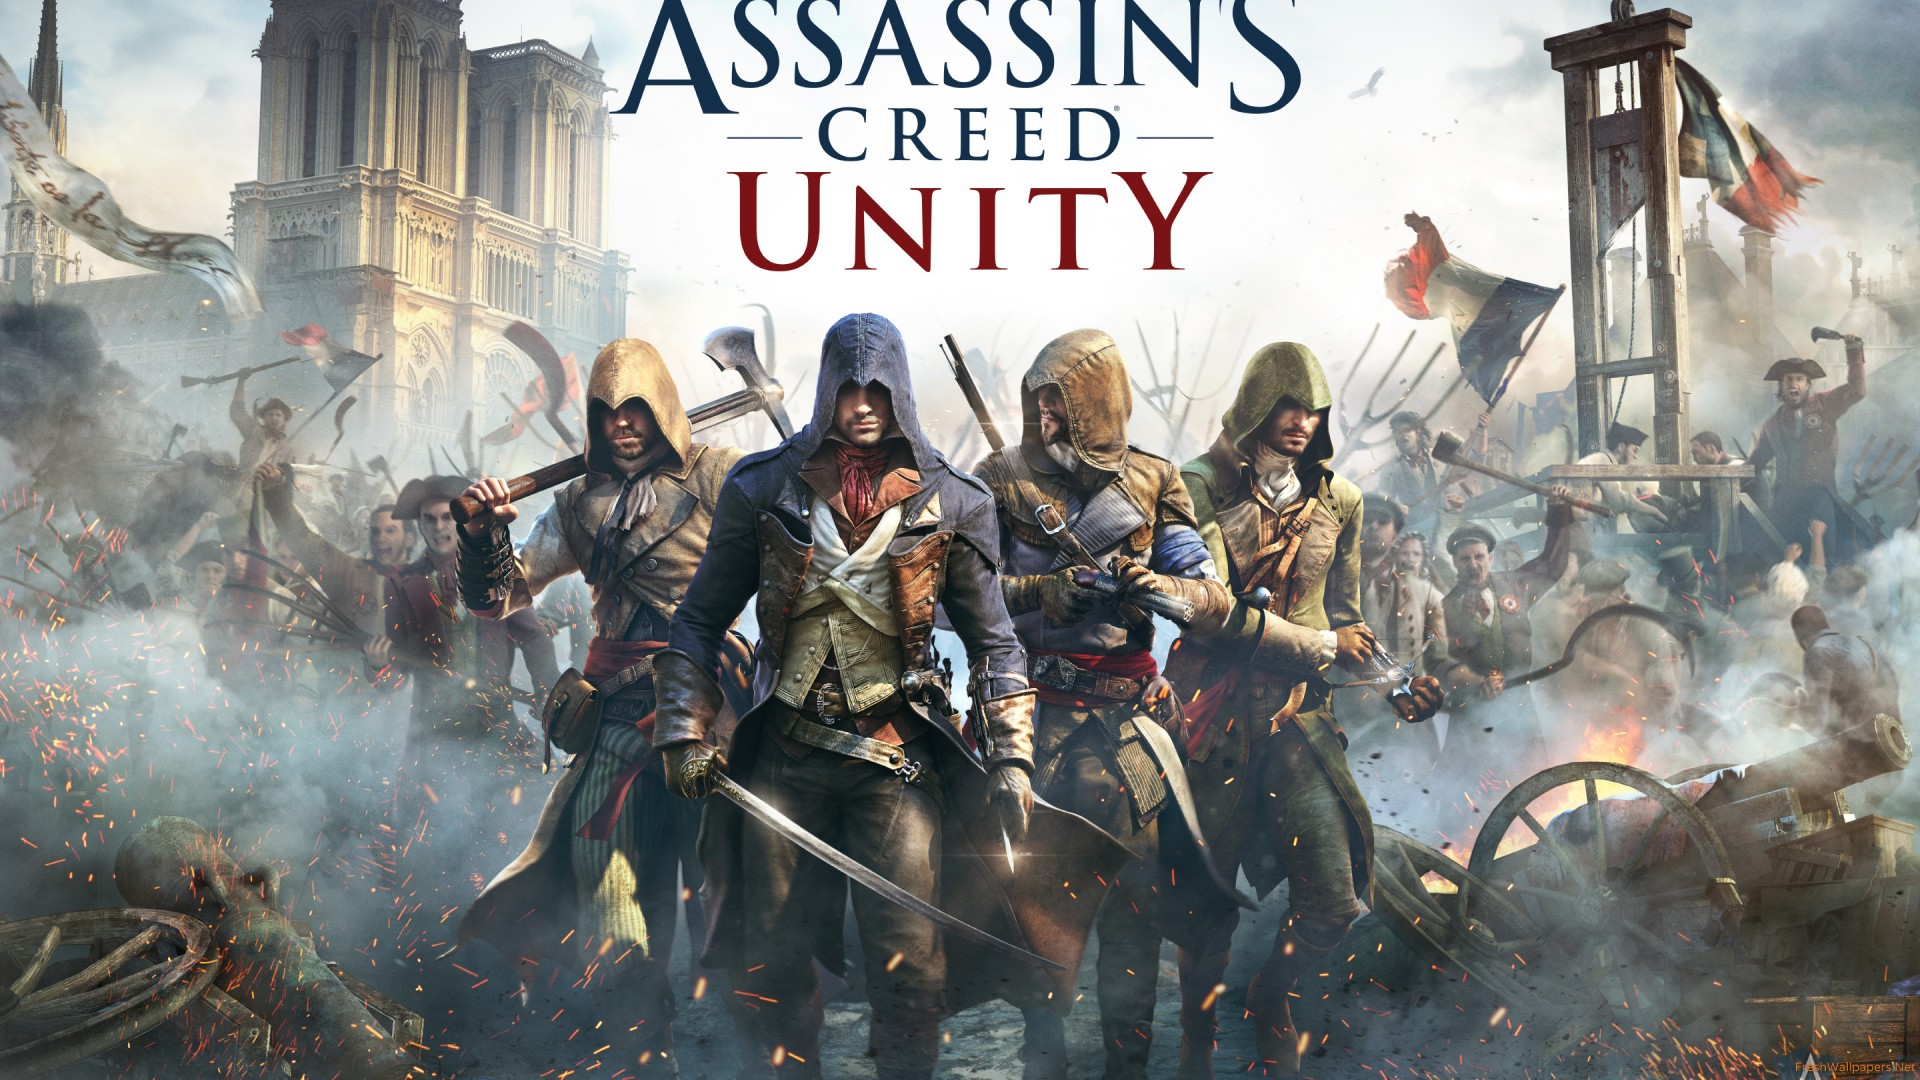 [Image: Assassins-Creed-Unity-Cover.jpg]